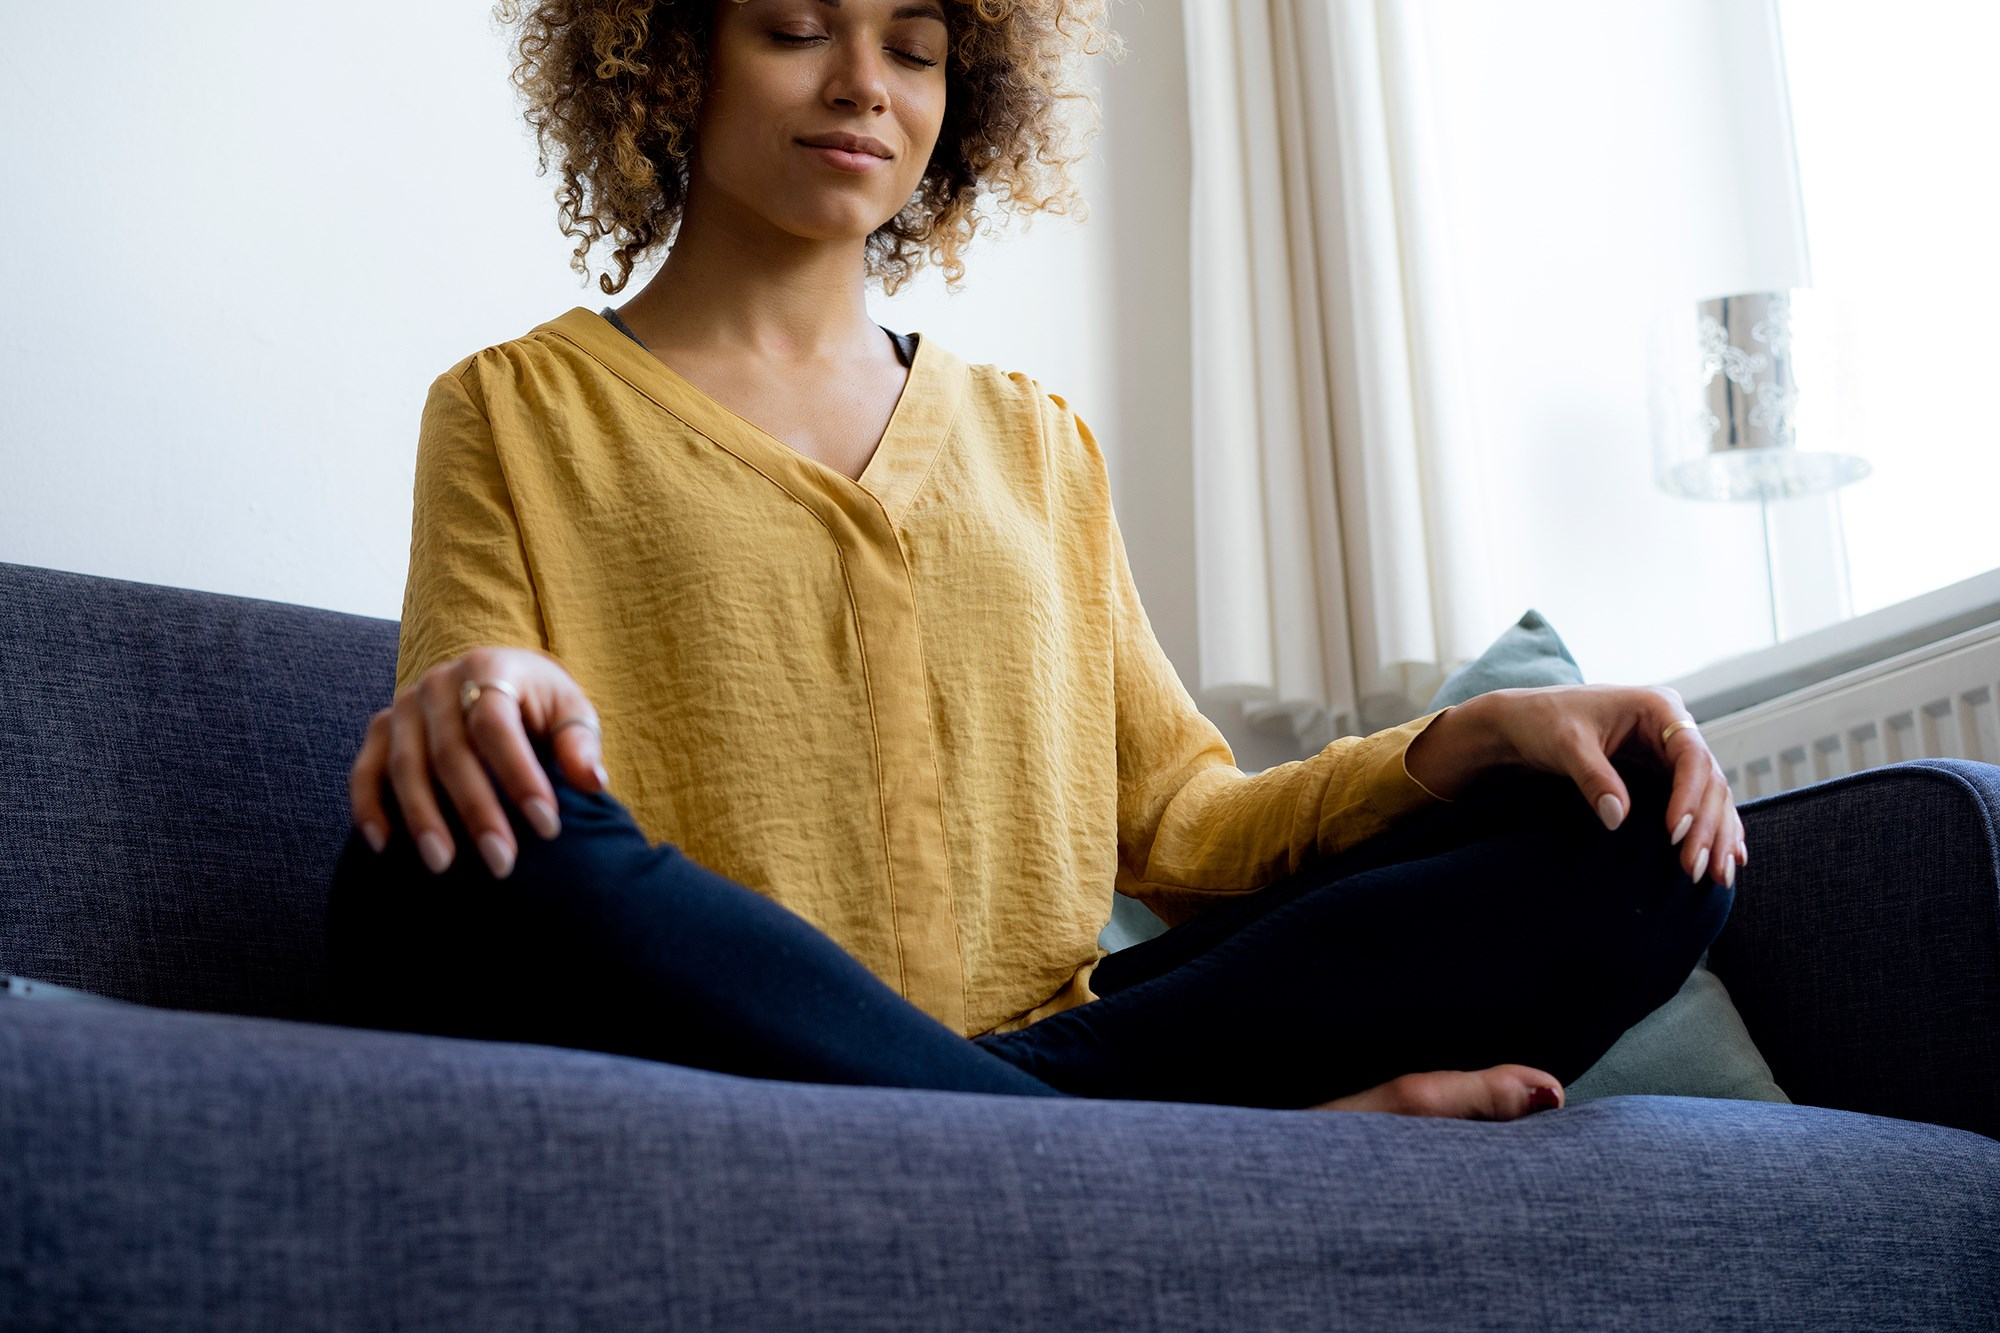 Previous studies demonstrated that mindfulness-based interventions, such as MBCT, could reduce patient distress.